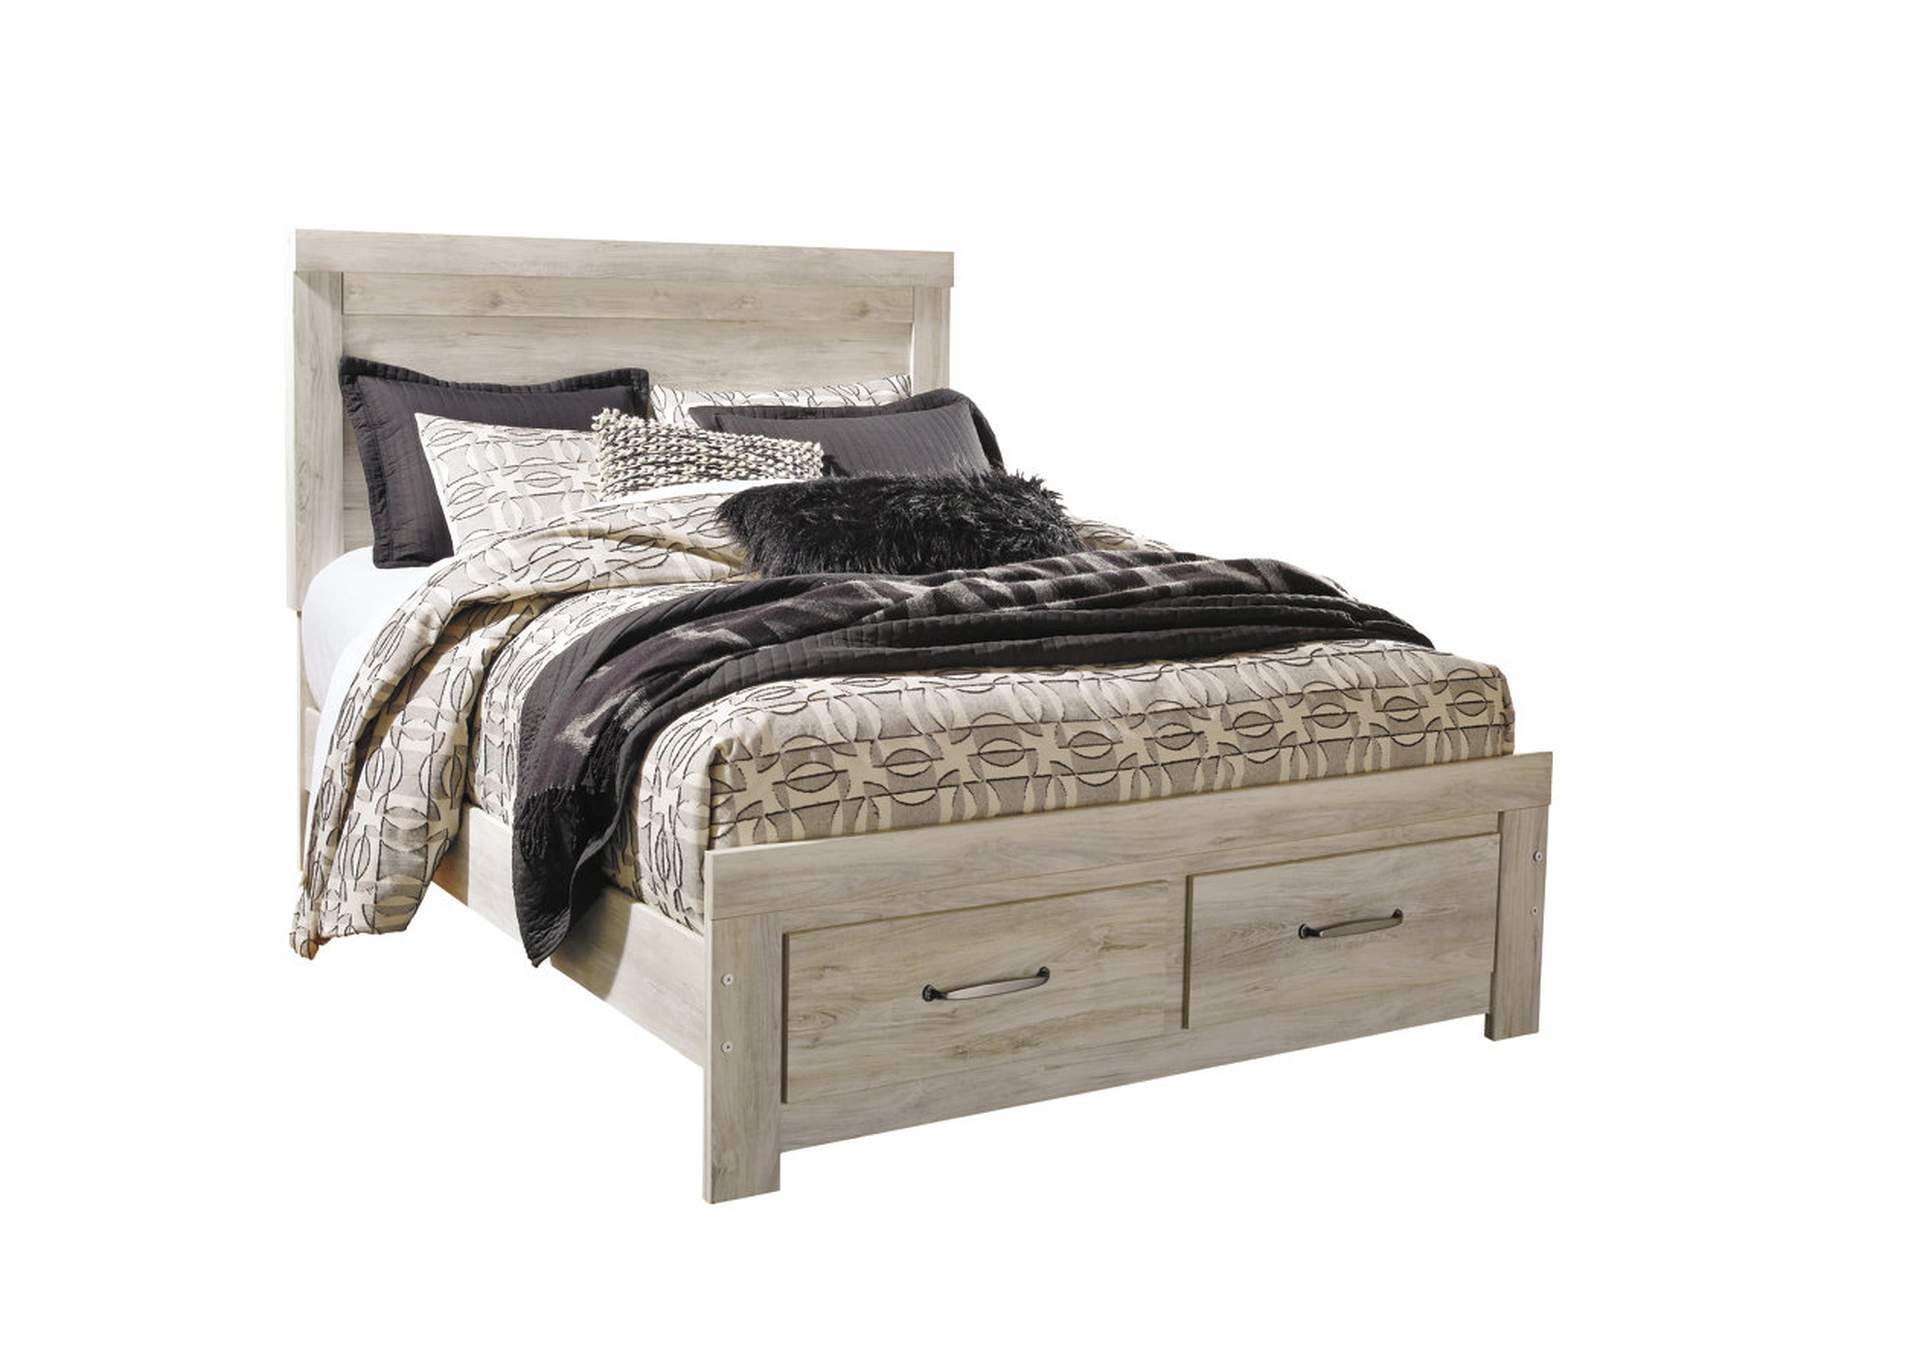 Buy A Bed Best Buy Furniture And Mattress Bellaby Whitewash Queen Platform